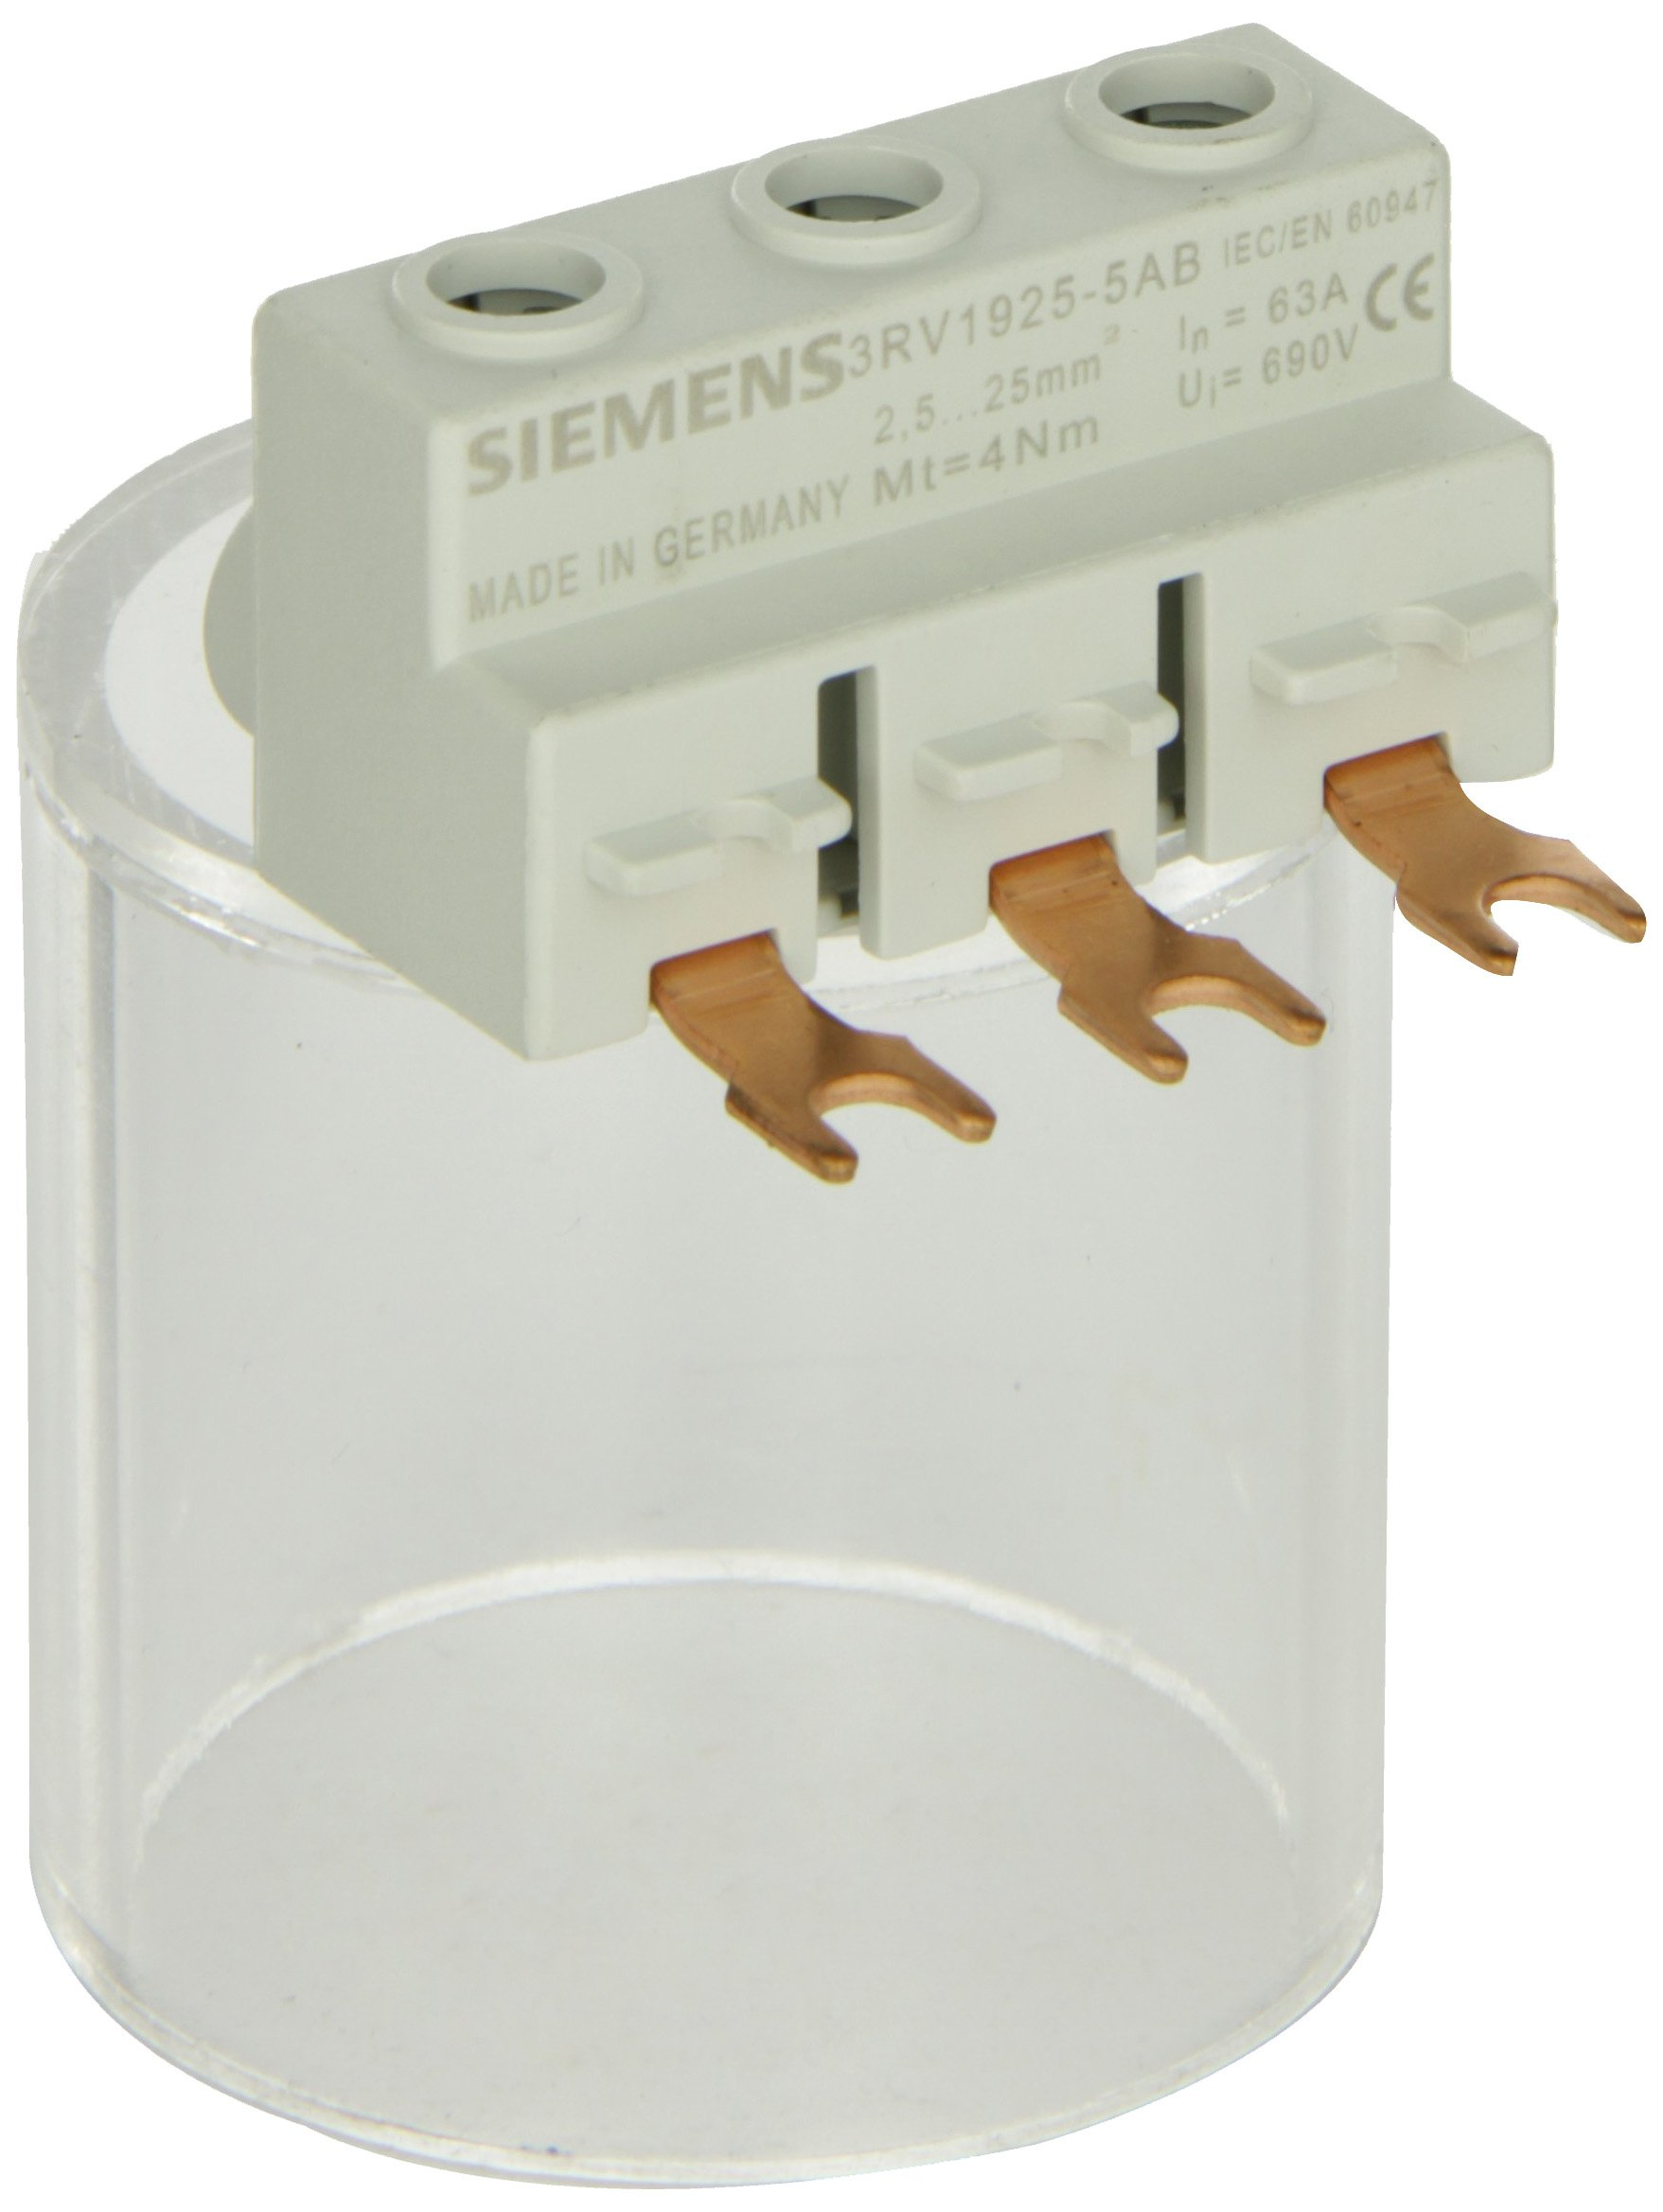 Siemens 3RV19 25-5AB Three Phase Feeder Terminal, Connection From Top, 2.5-25 Solid or Stranded, 4-16 Finely Stranded With End Sleeve, 12-4 AWG Cables, 4Nm Tightening Torque by Siemens (Image #1)